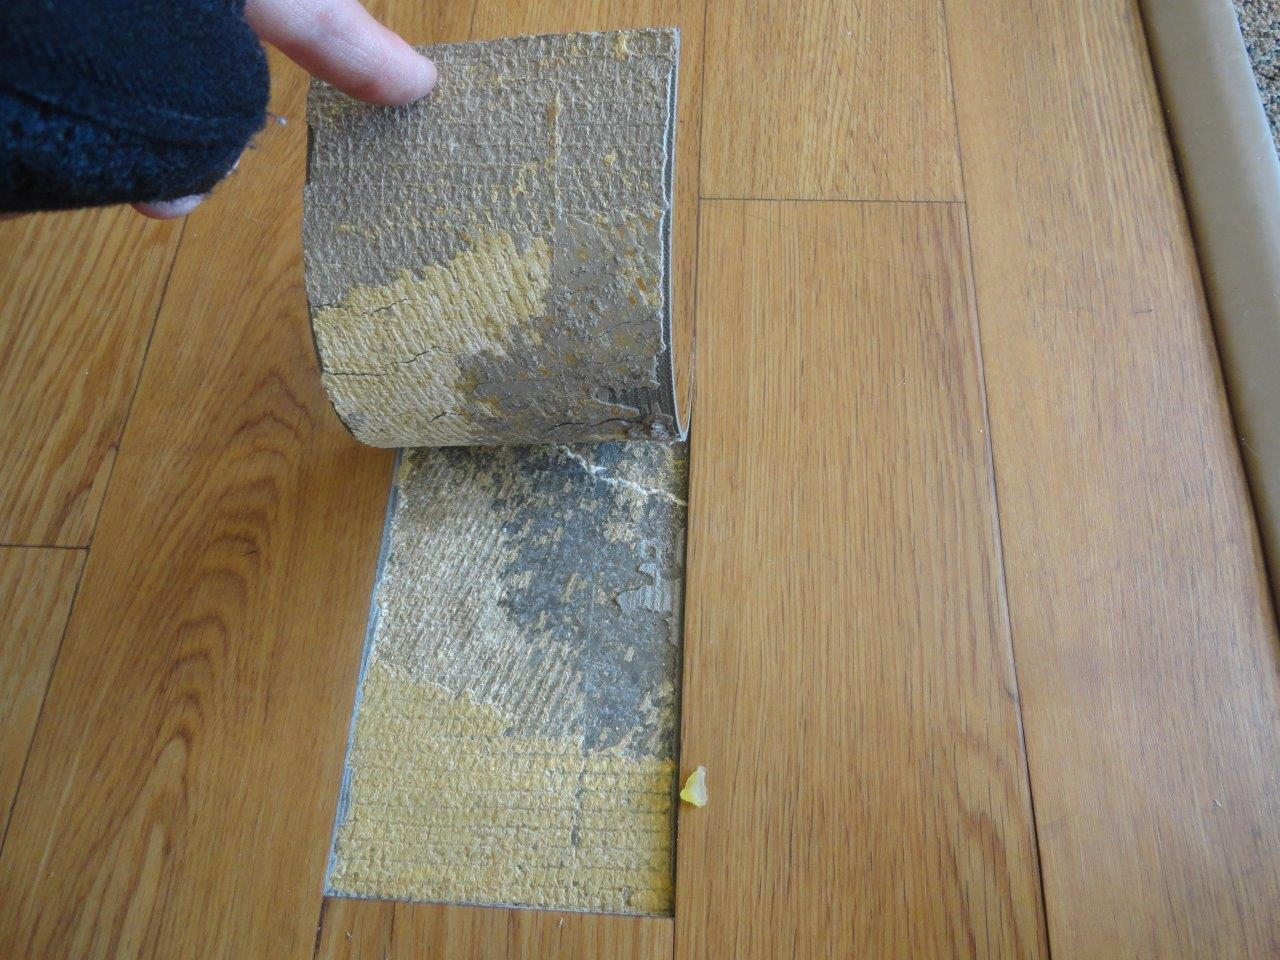 Flooring Defects Master Flooring Inspectors Amp Consultants